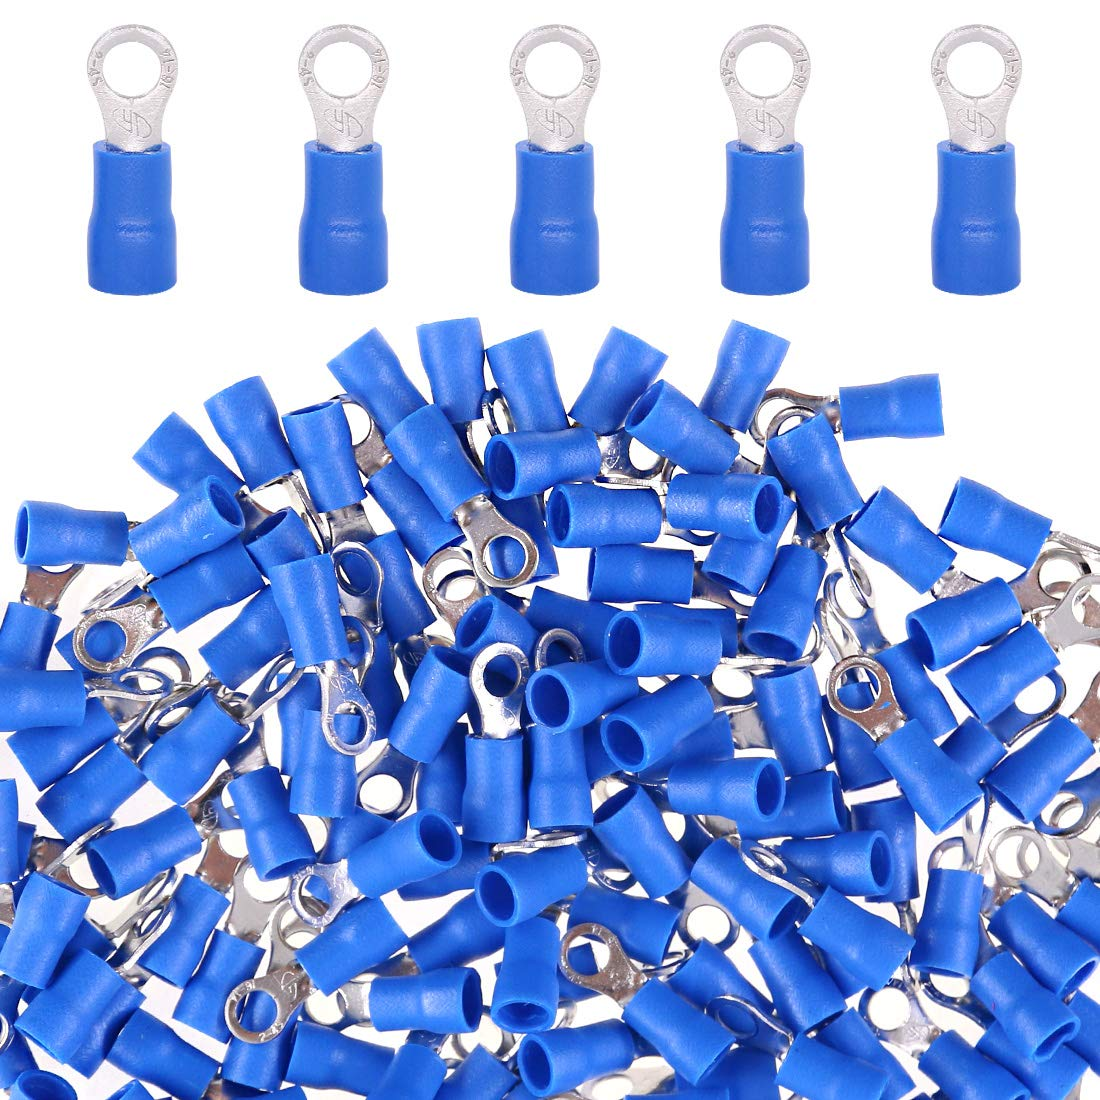 Glarks 100pcs 16-14 Gauge M4 Ring Electrical Insulated Quick Splice Crimp Terminals Connectors 71hnDHW-qrL